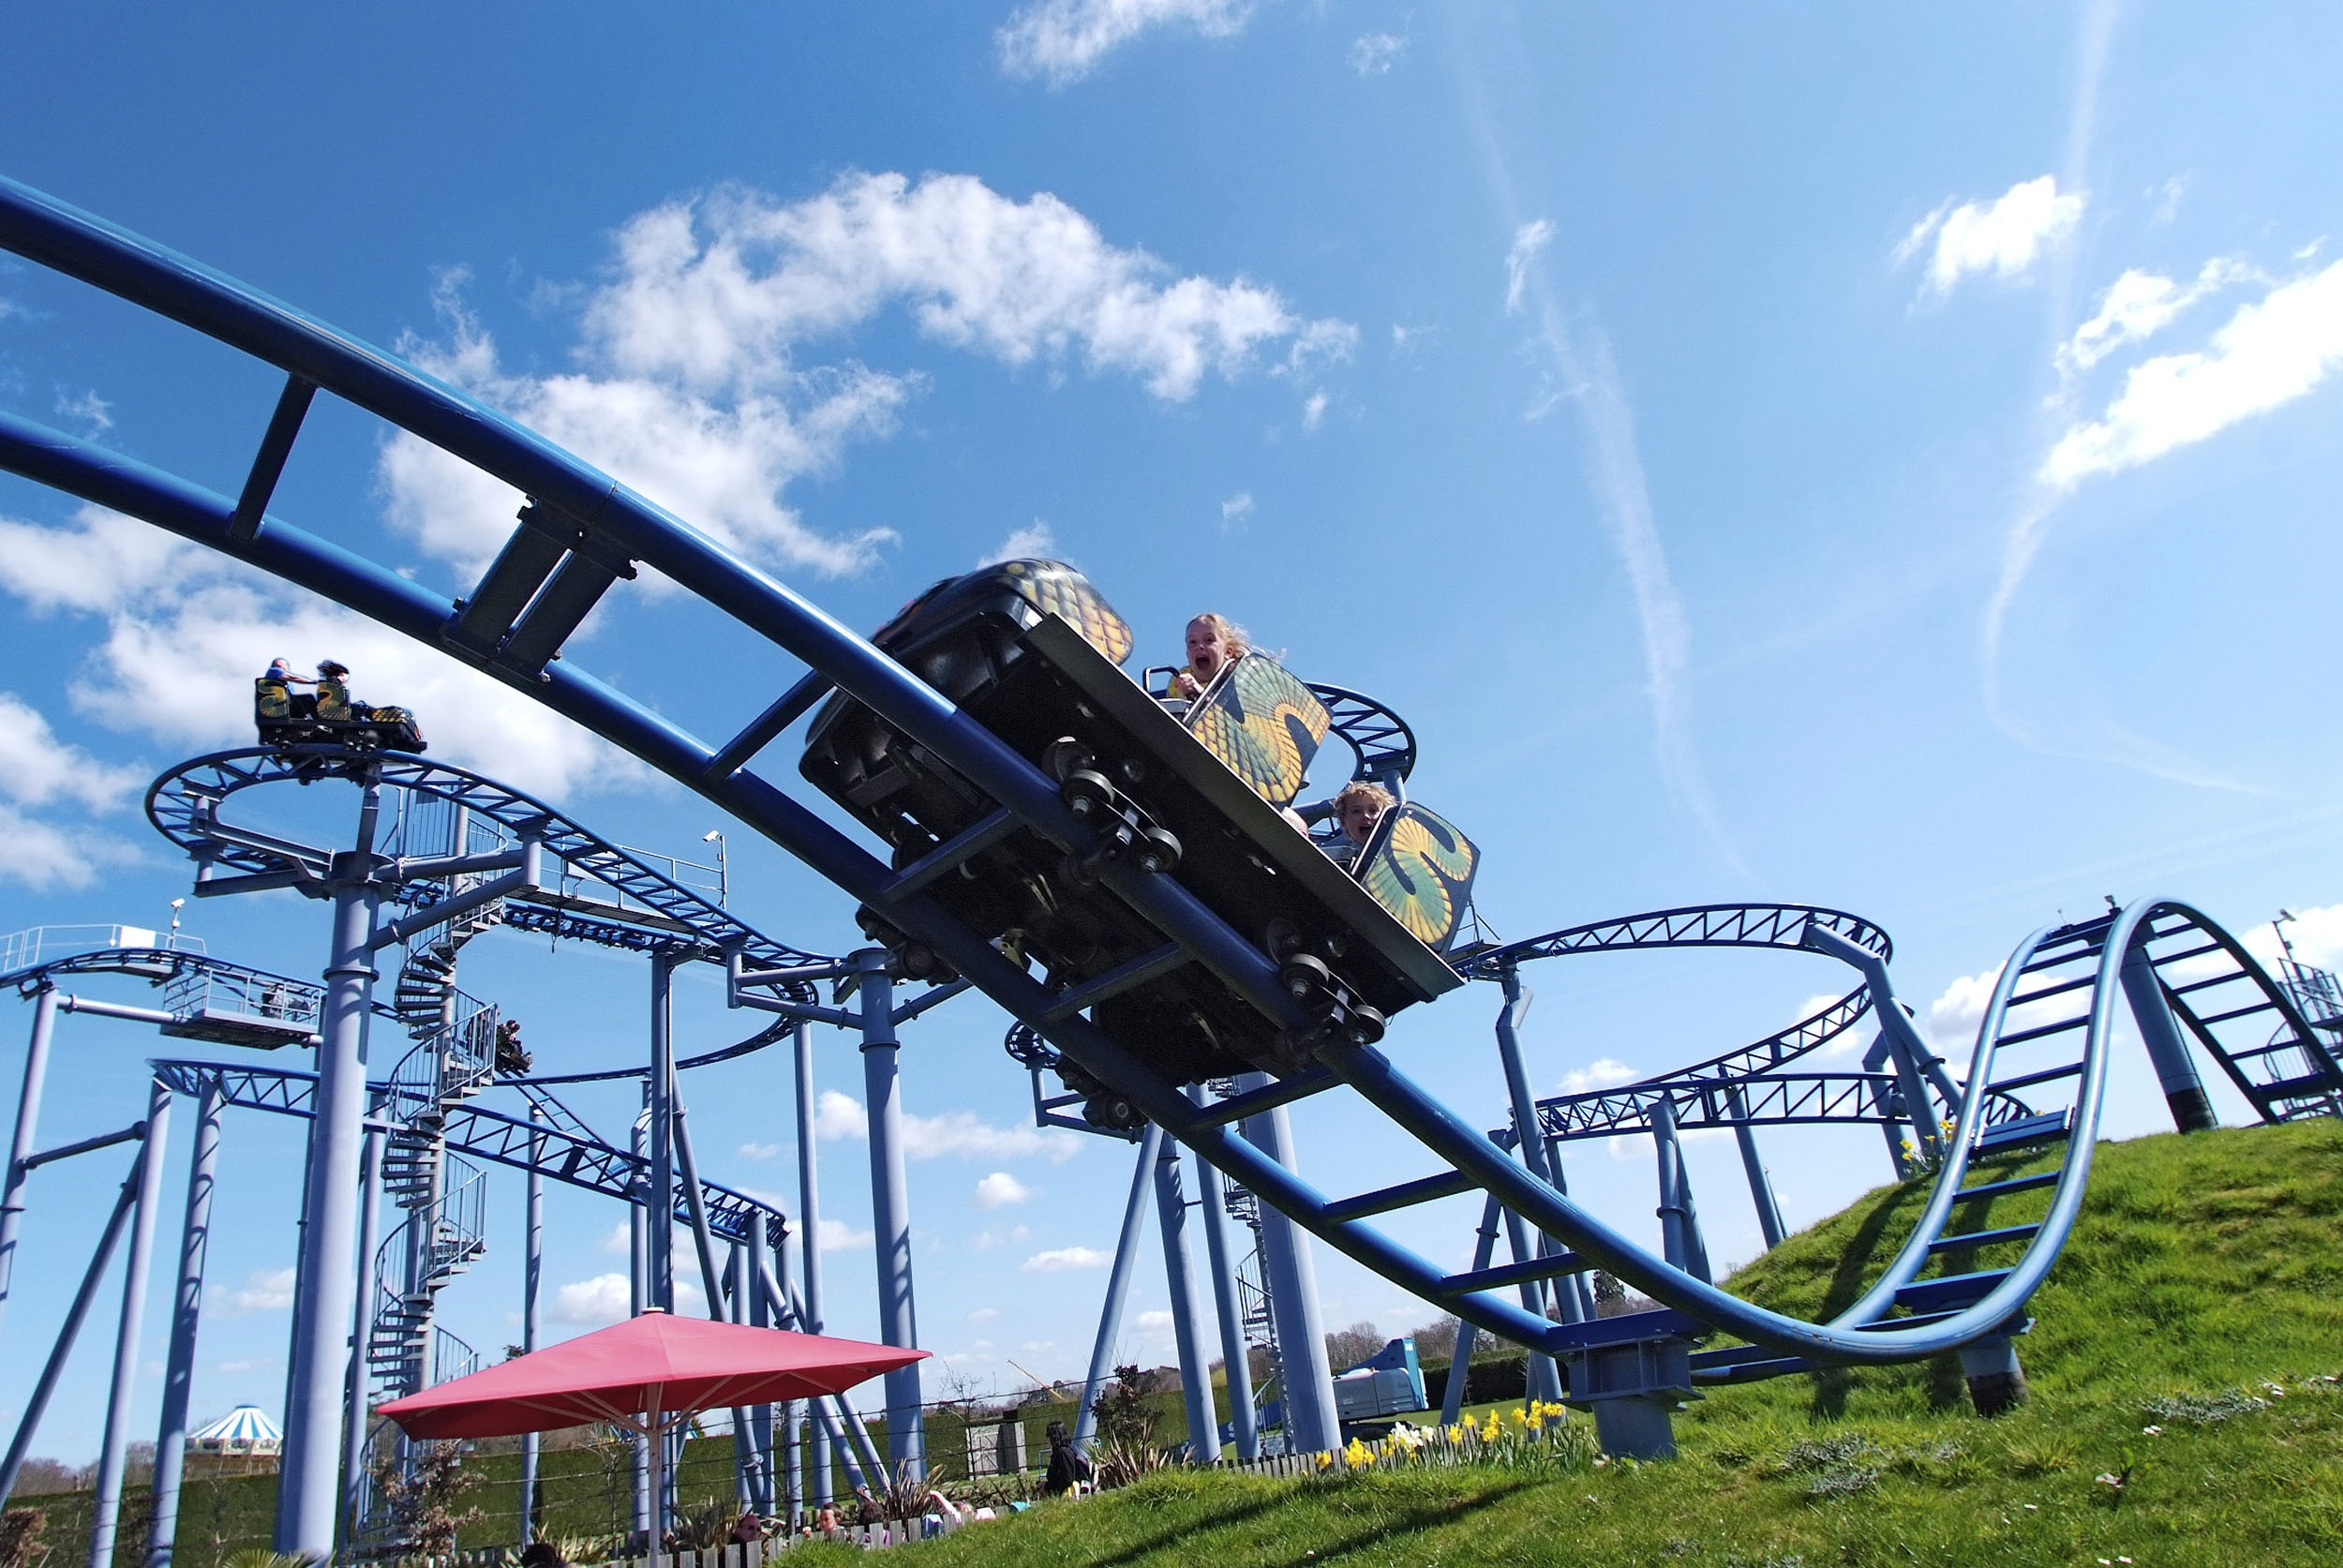 The Cobra at Paultons Park